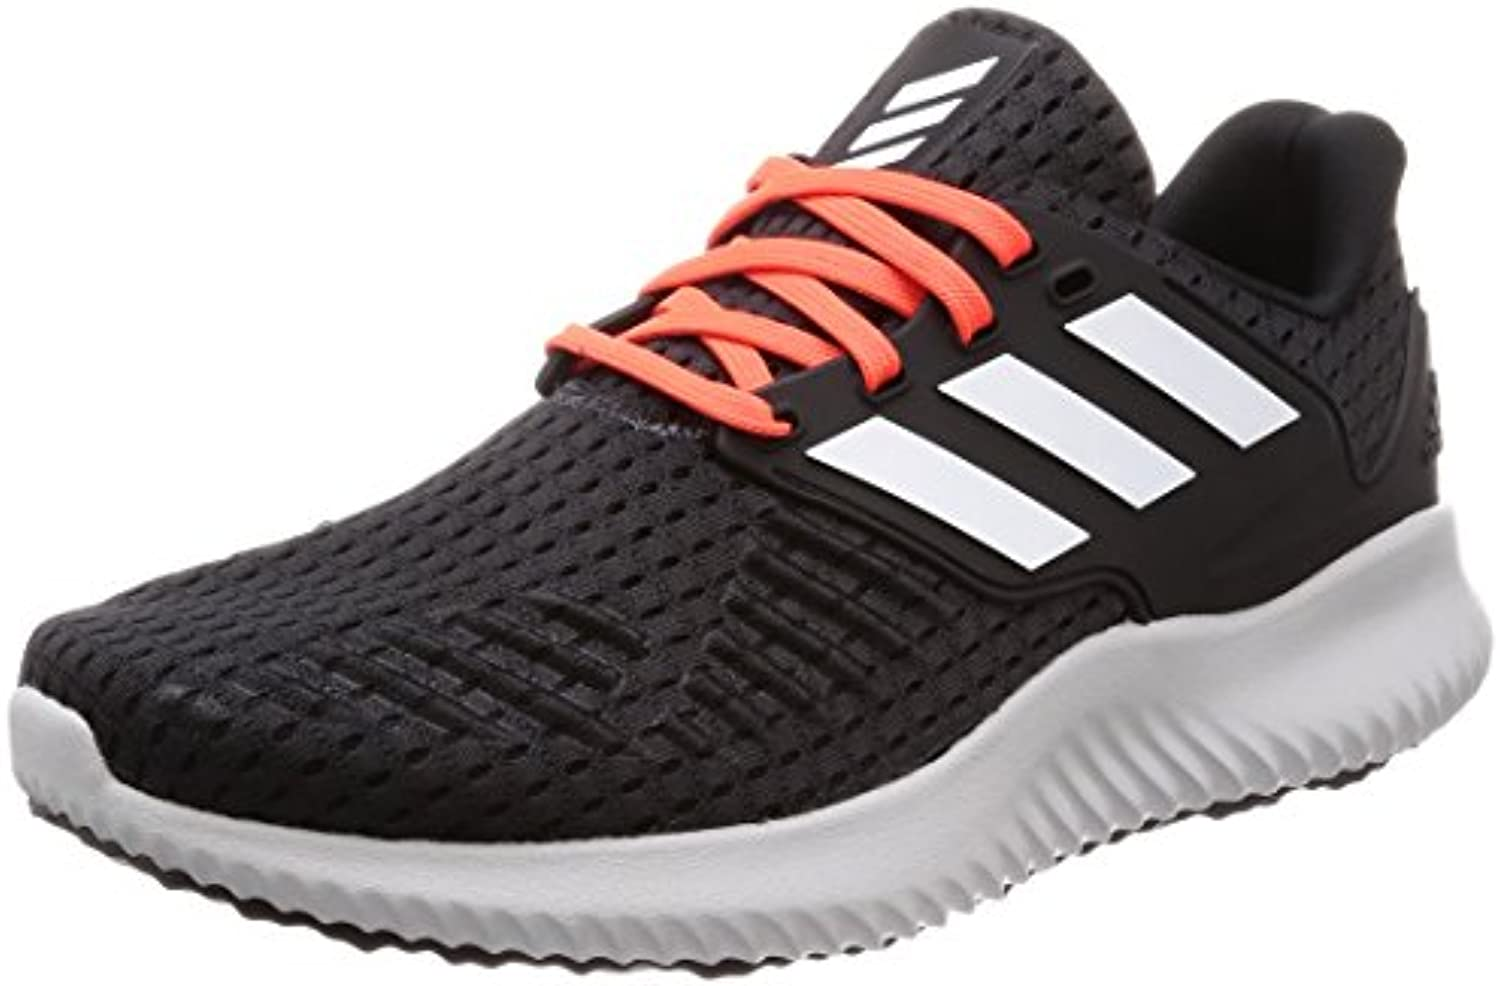 Da Fitness Amazon 2 Rc shoes Adidas Alphabounce Bianco M n0y8vmNOw